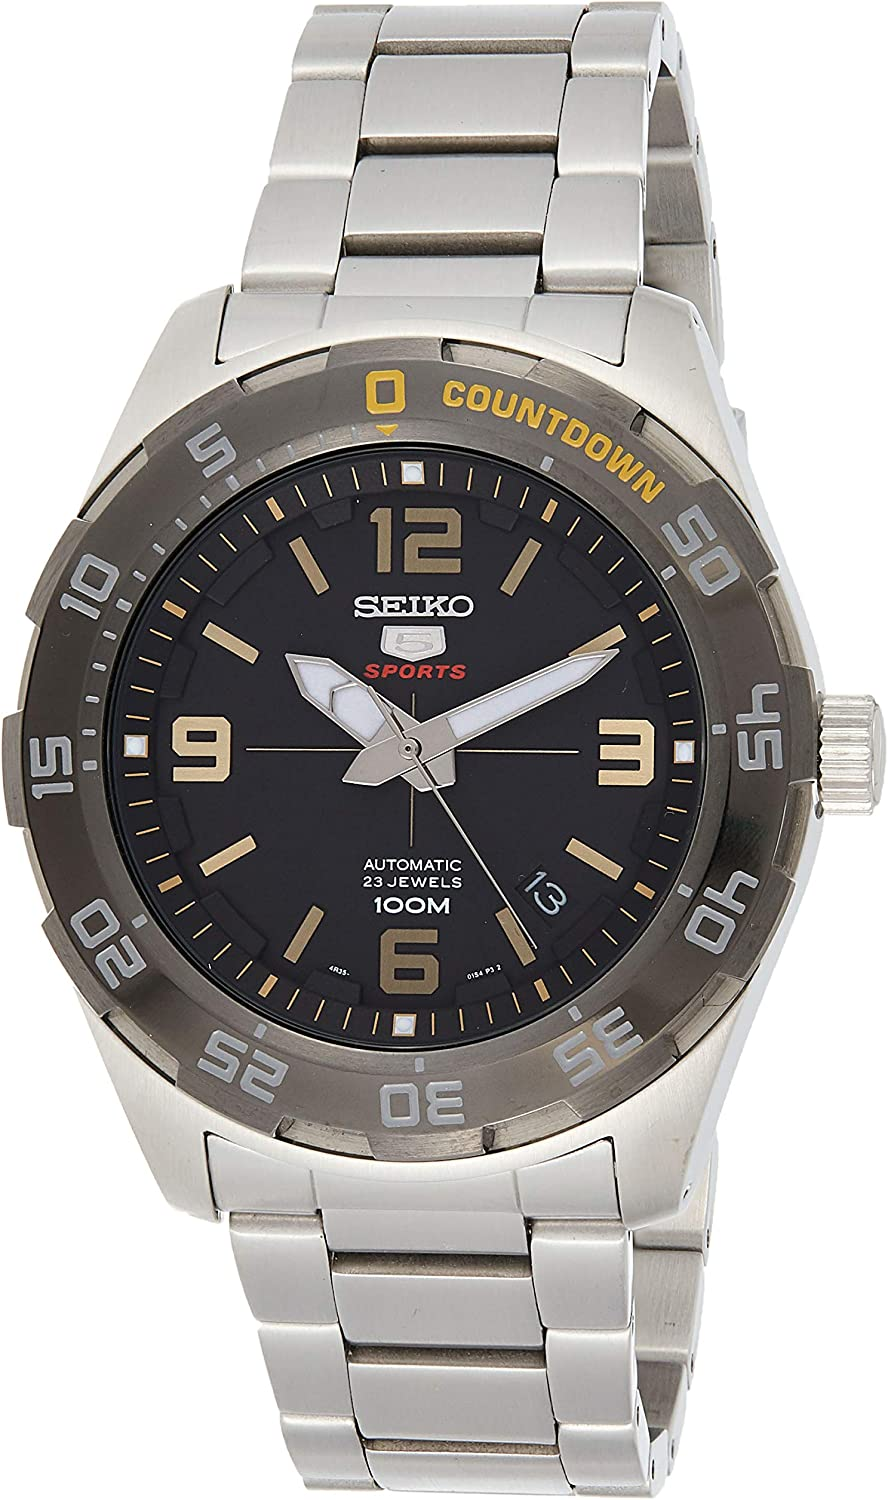 Seiko 5 Automatic Black Dial Mens Watch SRPB83